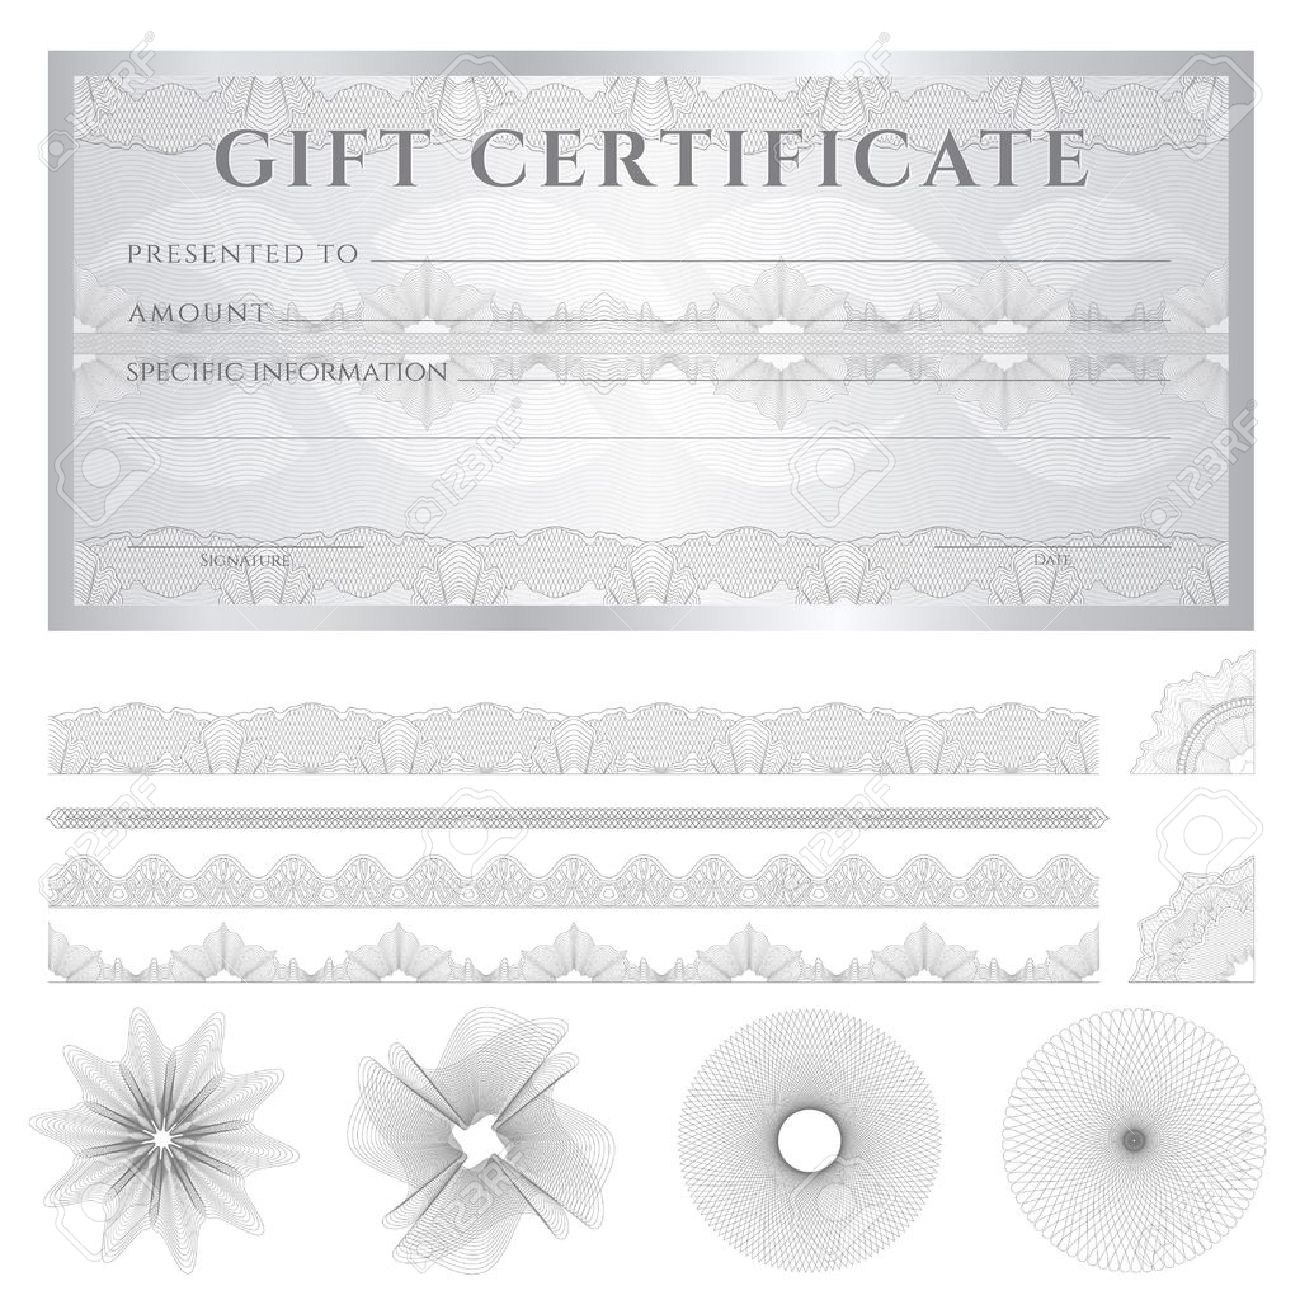 gift certificate voucher coupon template layout with guilloche